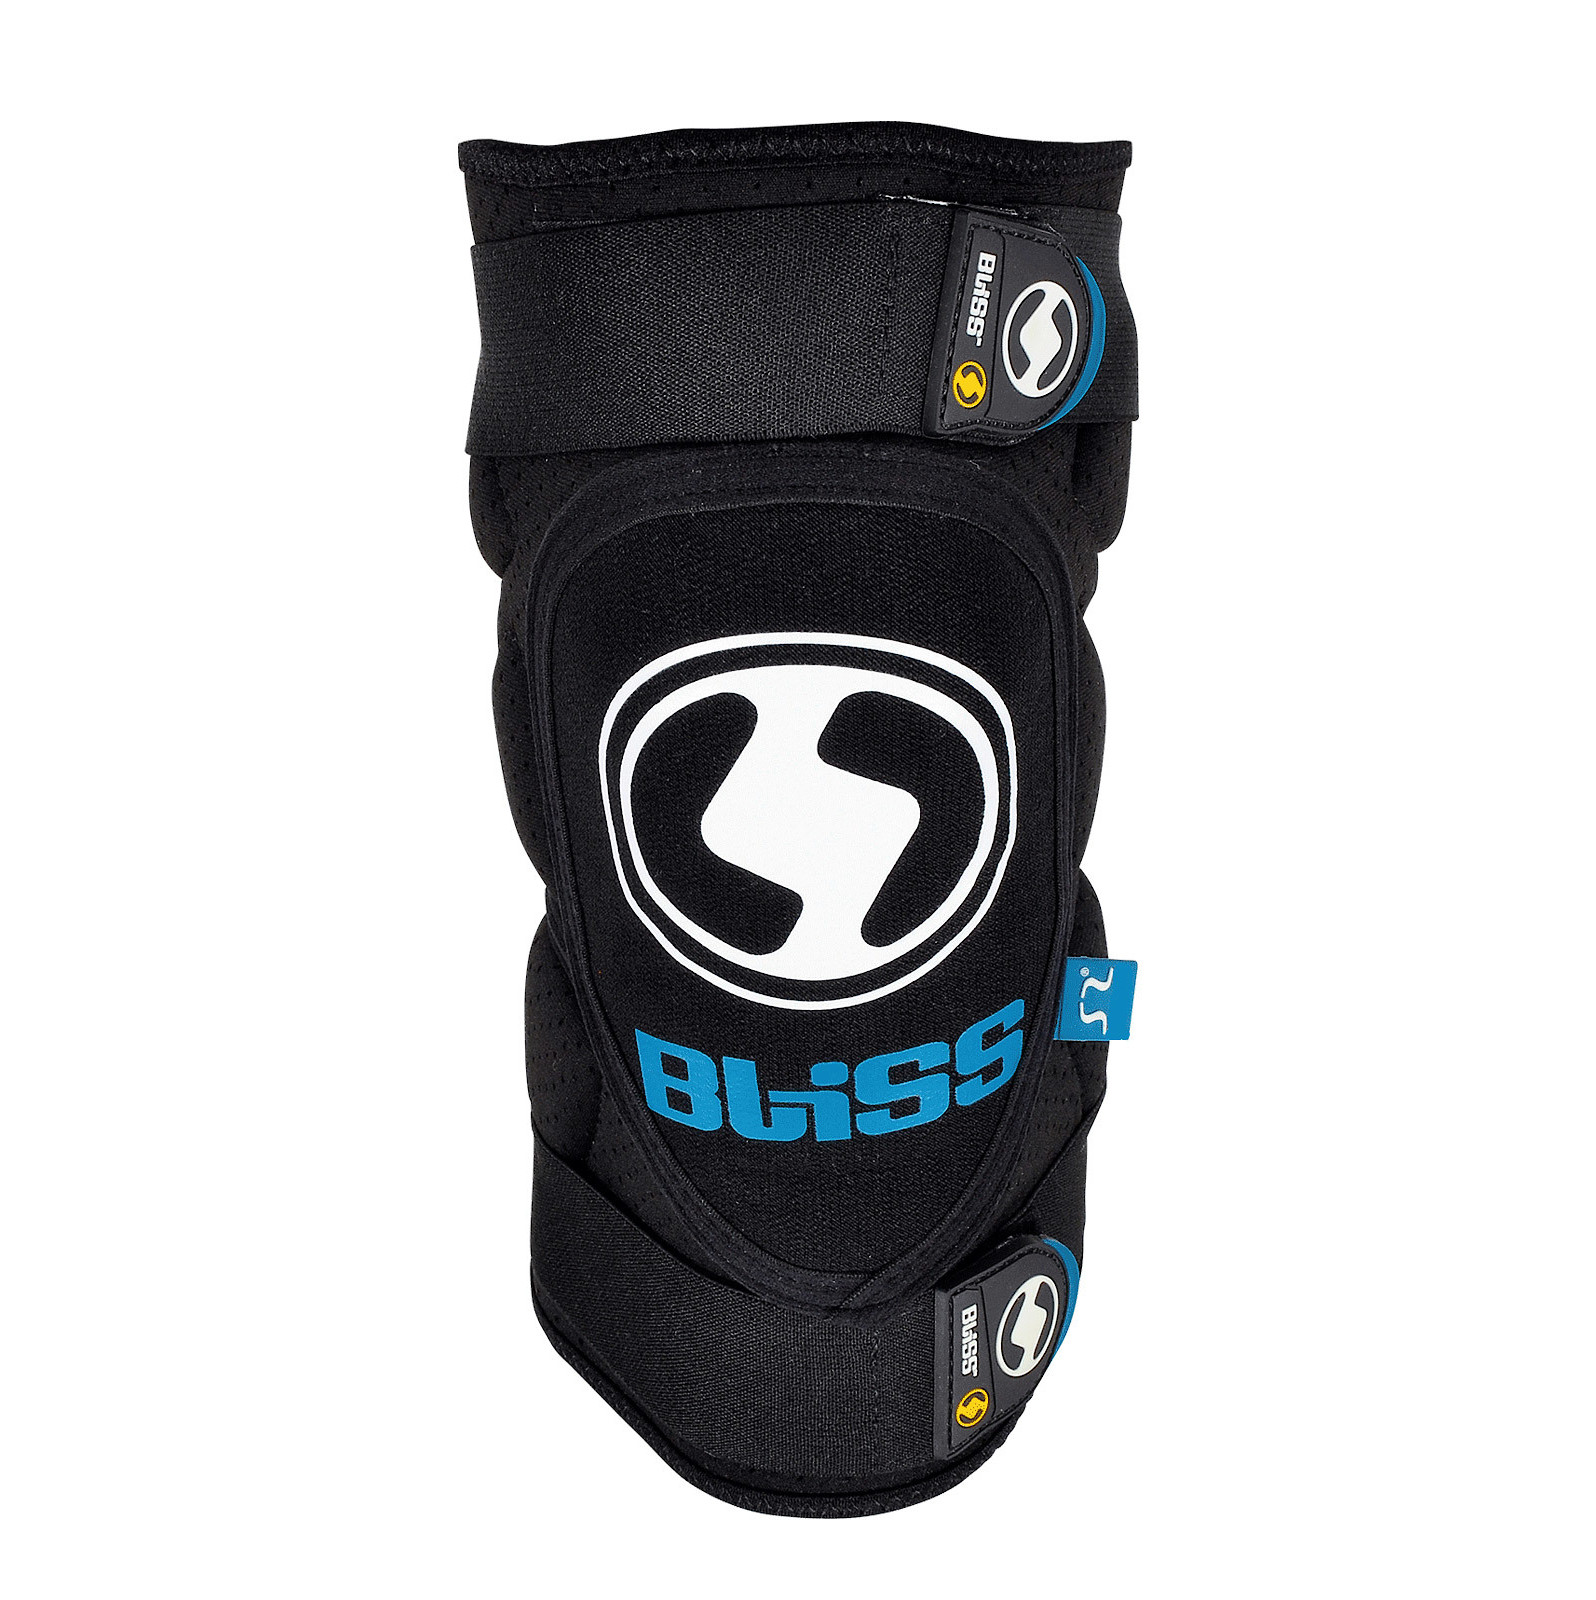 Bliss Protection ARG Kids Knee Pad